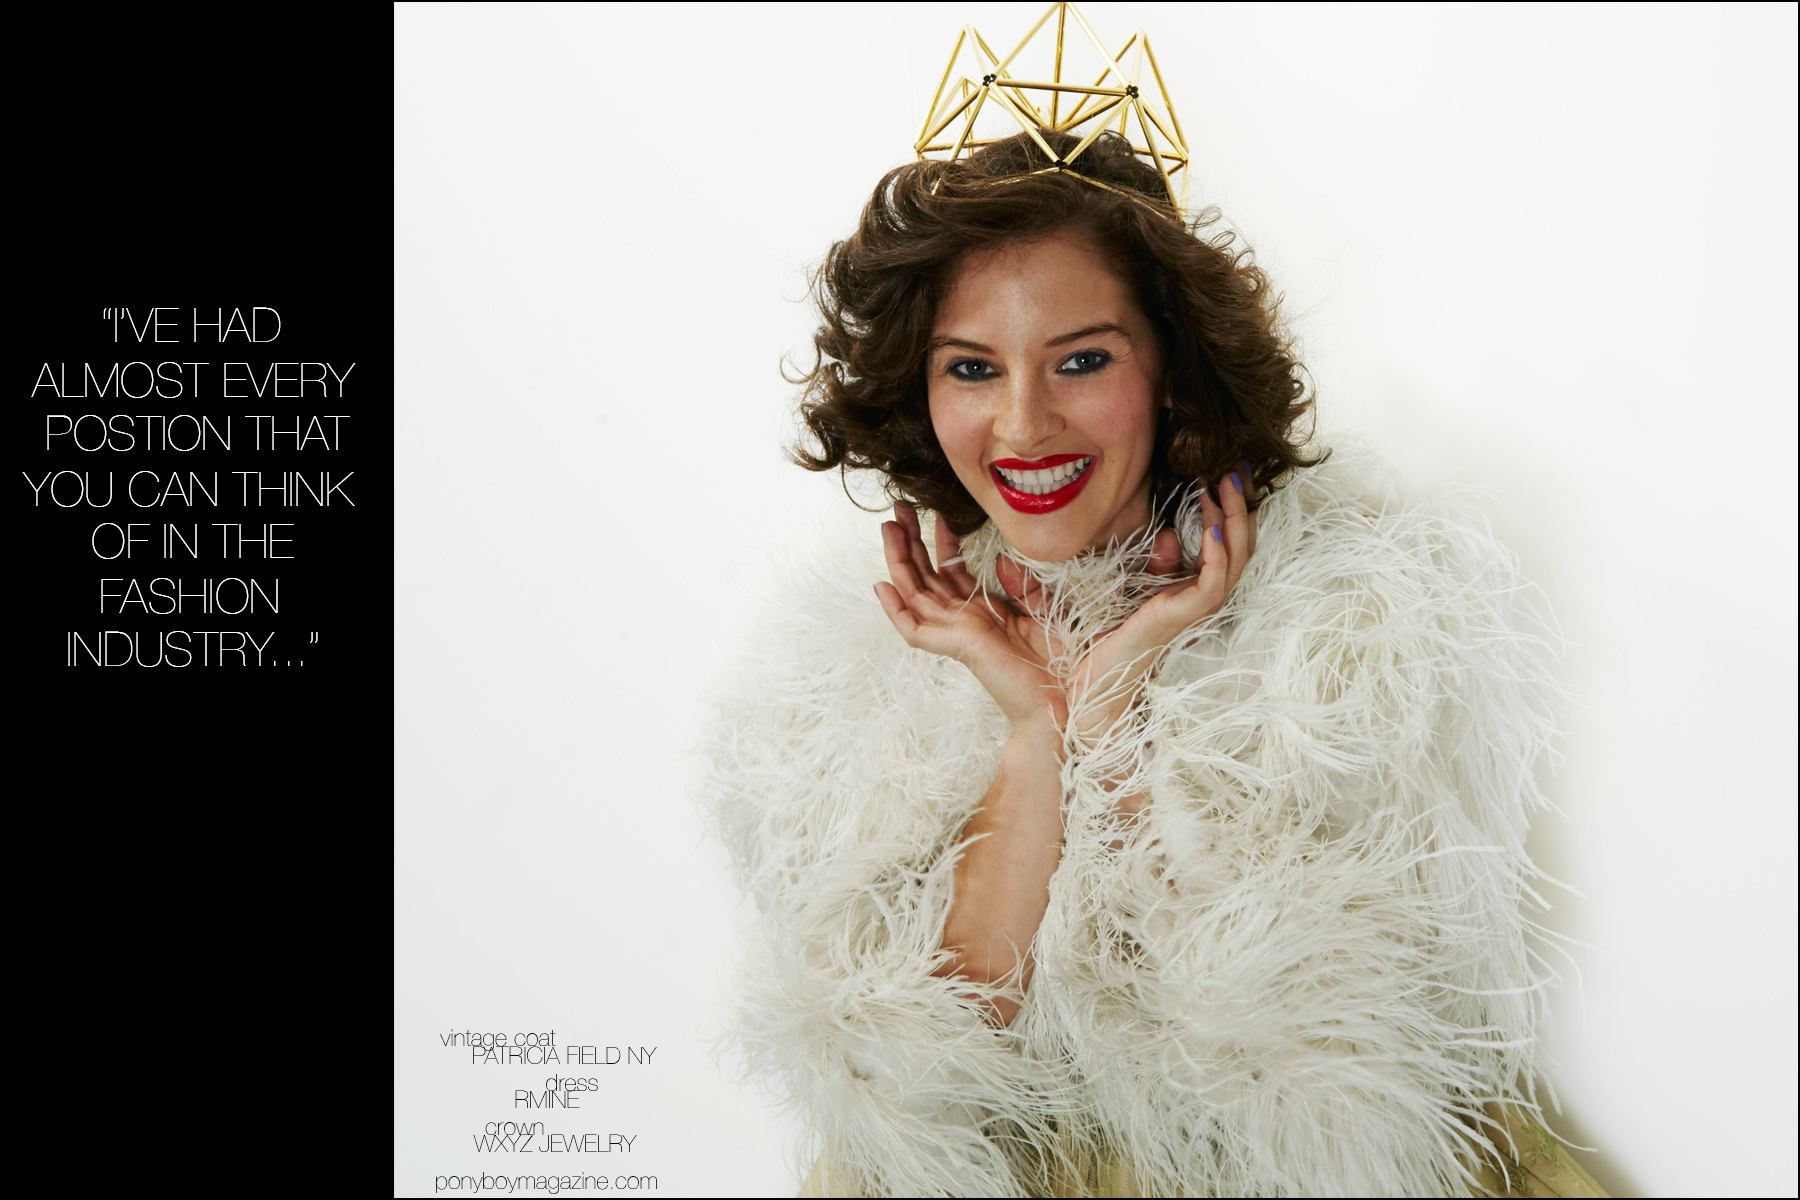 Amirah Kassem photographed in a vintage coat from Patricia Field and crown by WXYZ Jewelry by Alexander Thompson for Ponyboy magazine New York.